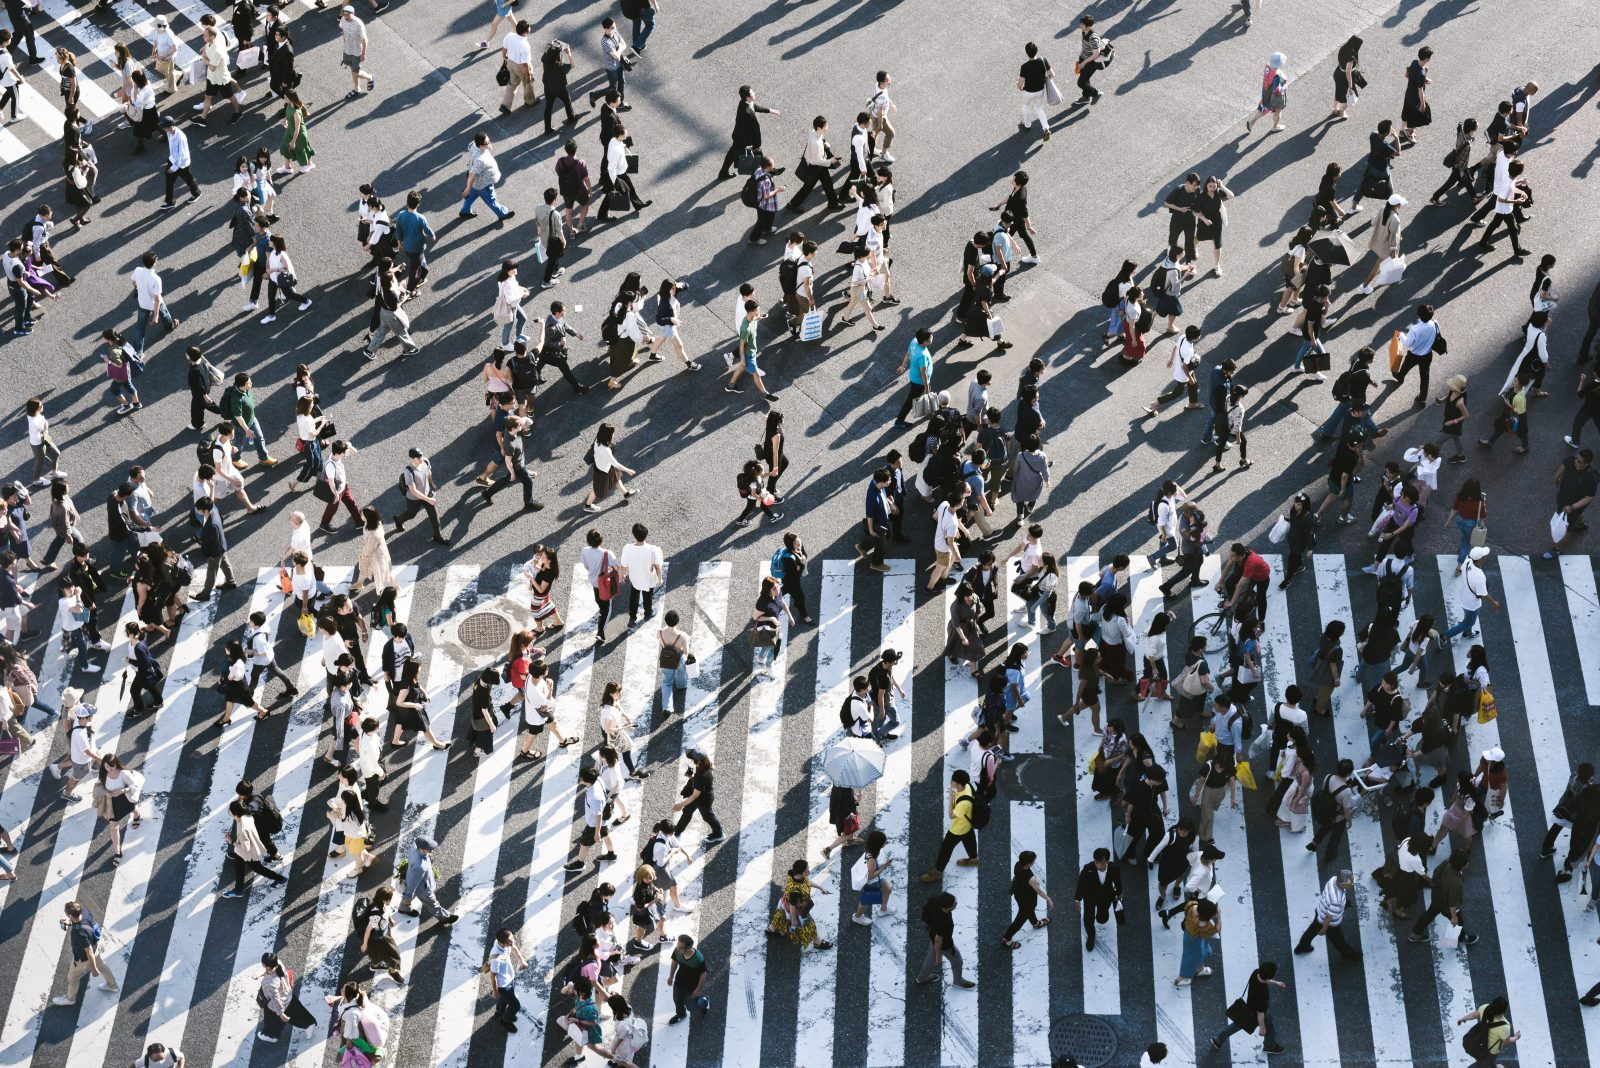 The 2020 Census – A Revolution in Understanding Who We Are or An Ill Timed Technological Experiment?